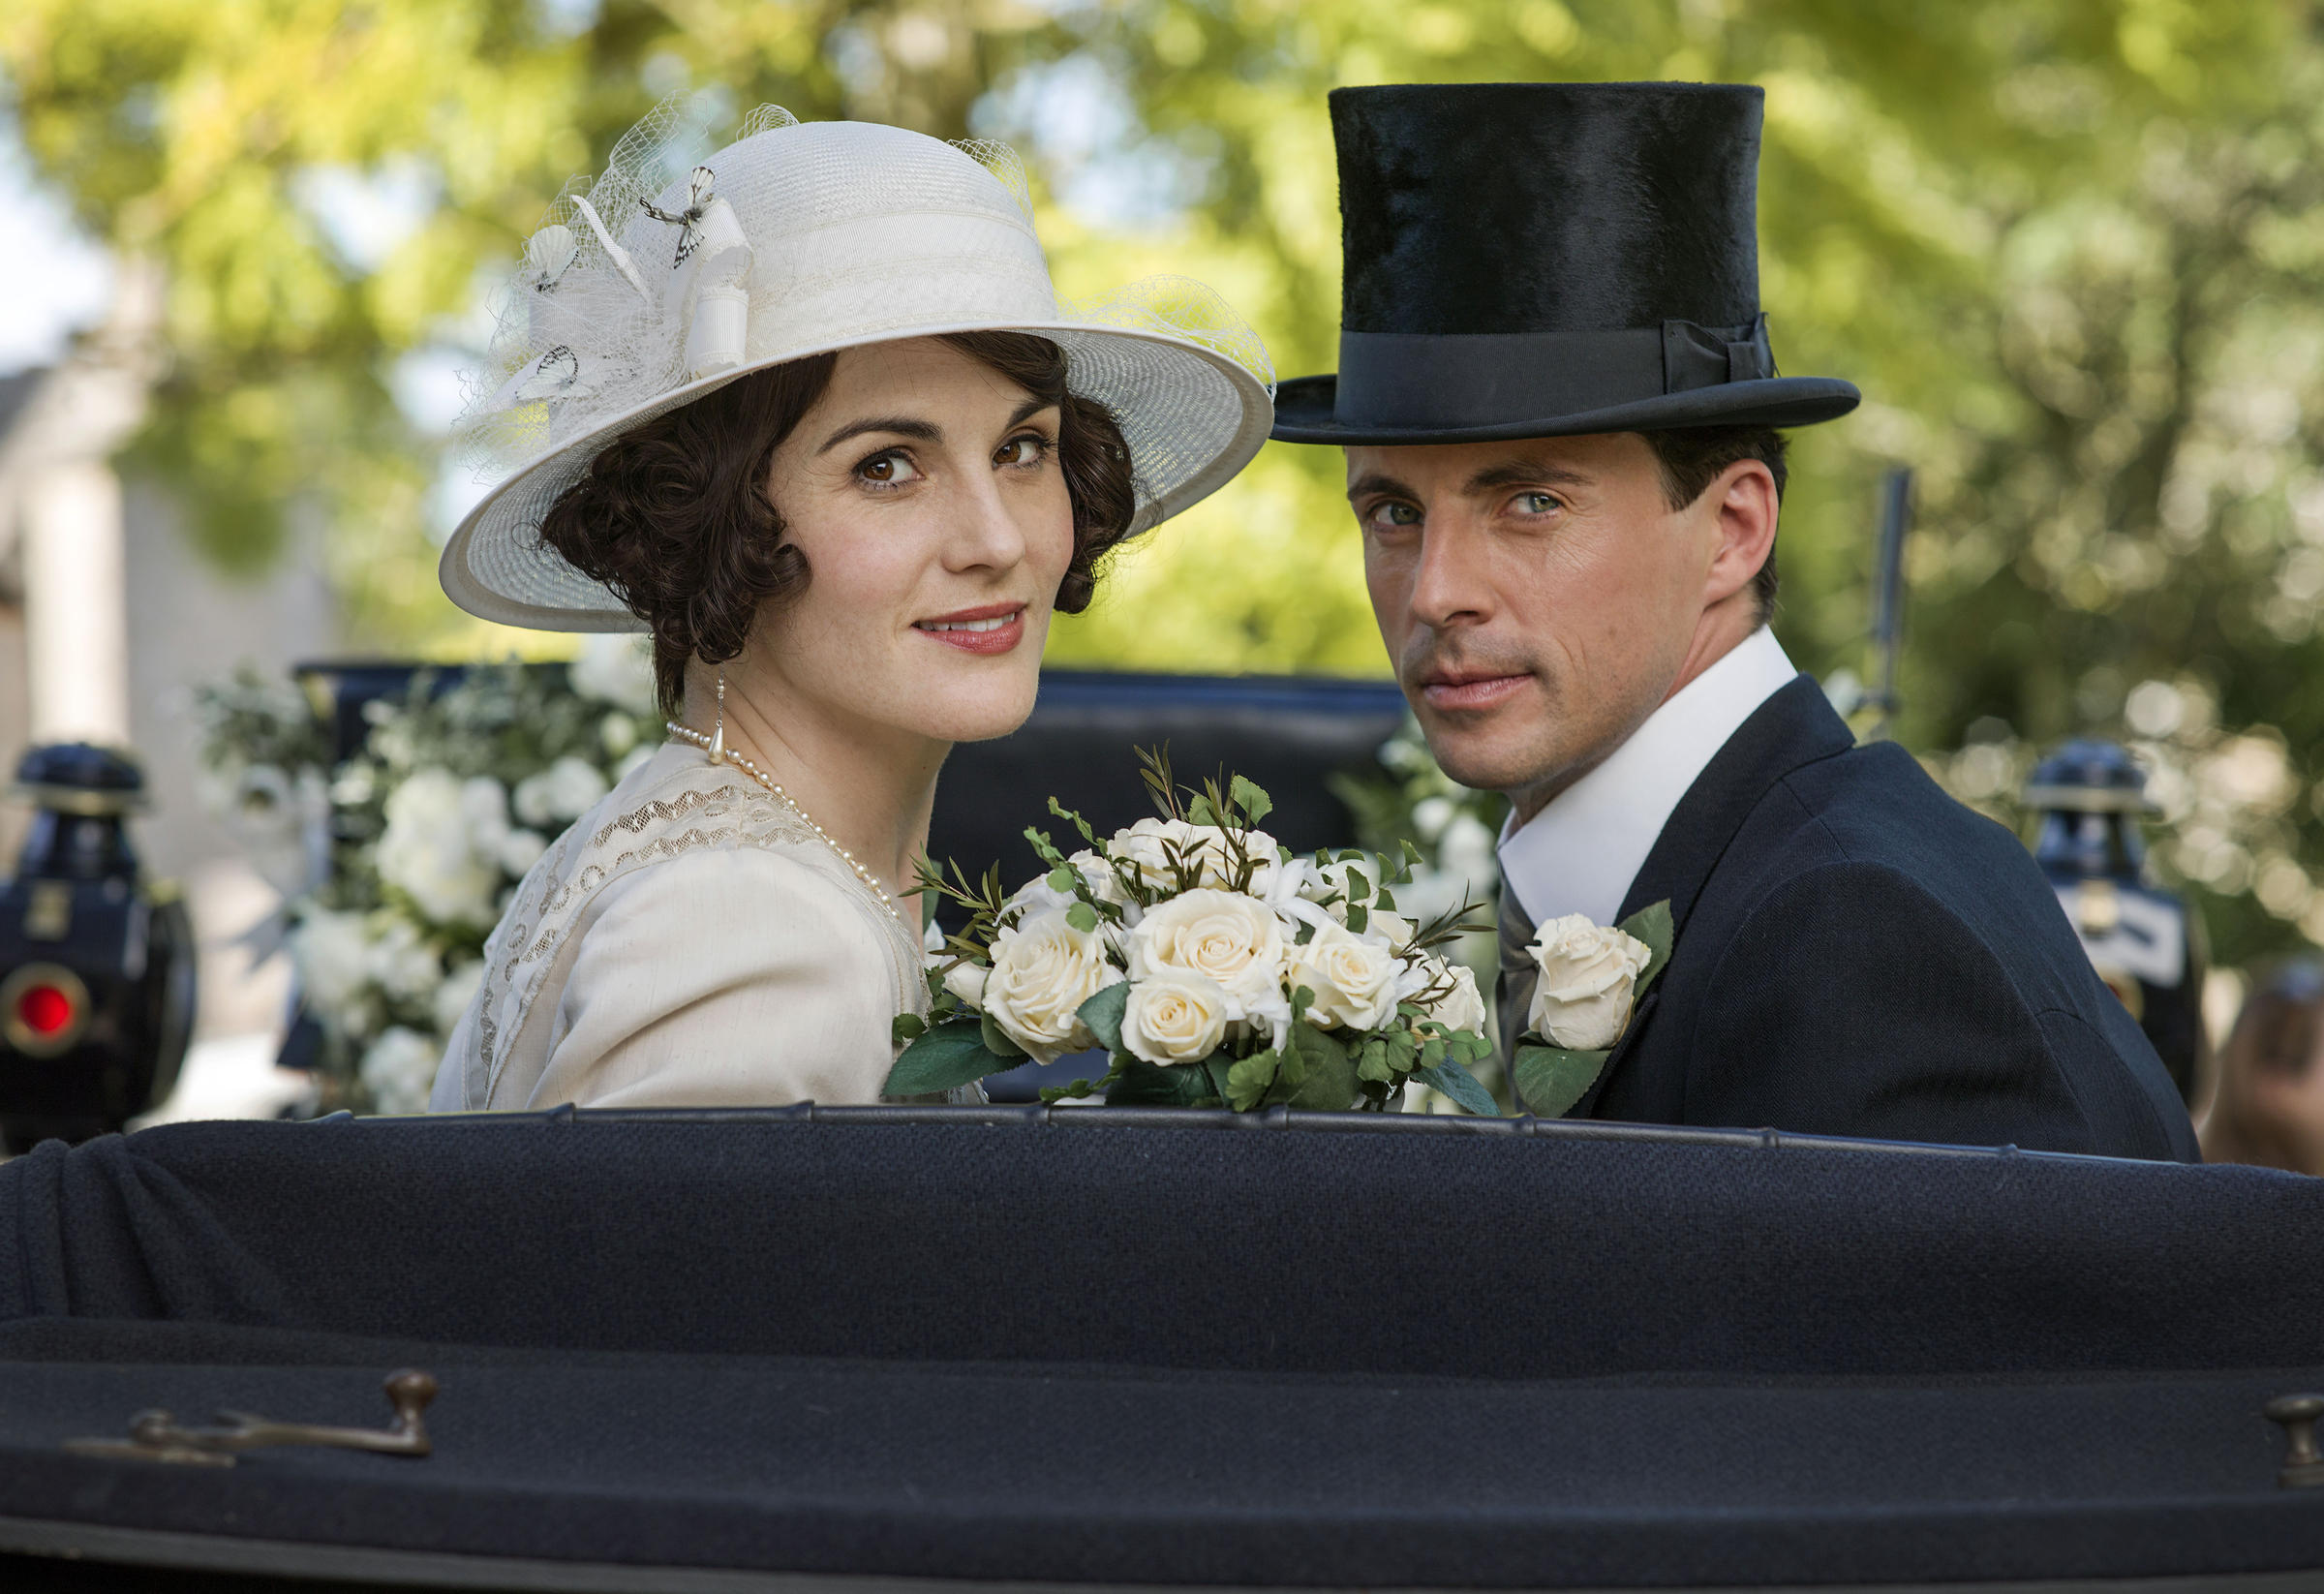 Downton Abbey, The Final SeasonMASTERPIECE on PBSShown from left to right: Michelle Dockery as Lady Mary and Matthew Goode as Henry Talbot(C) Nick Briggs/Carnival Film & Television Limited 2015 for MASTERPIECE